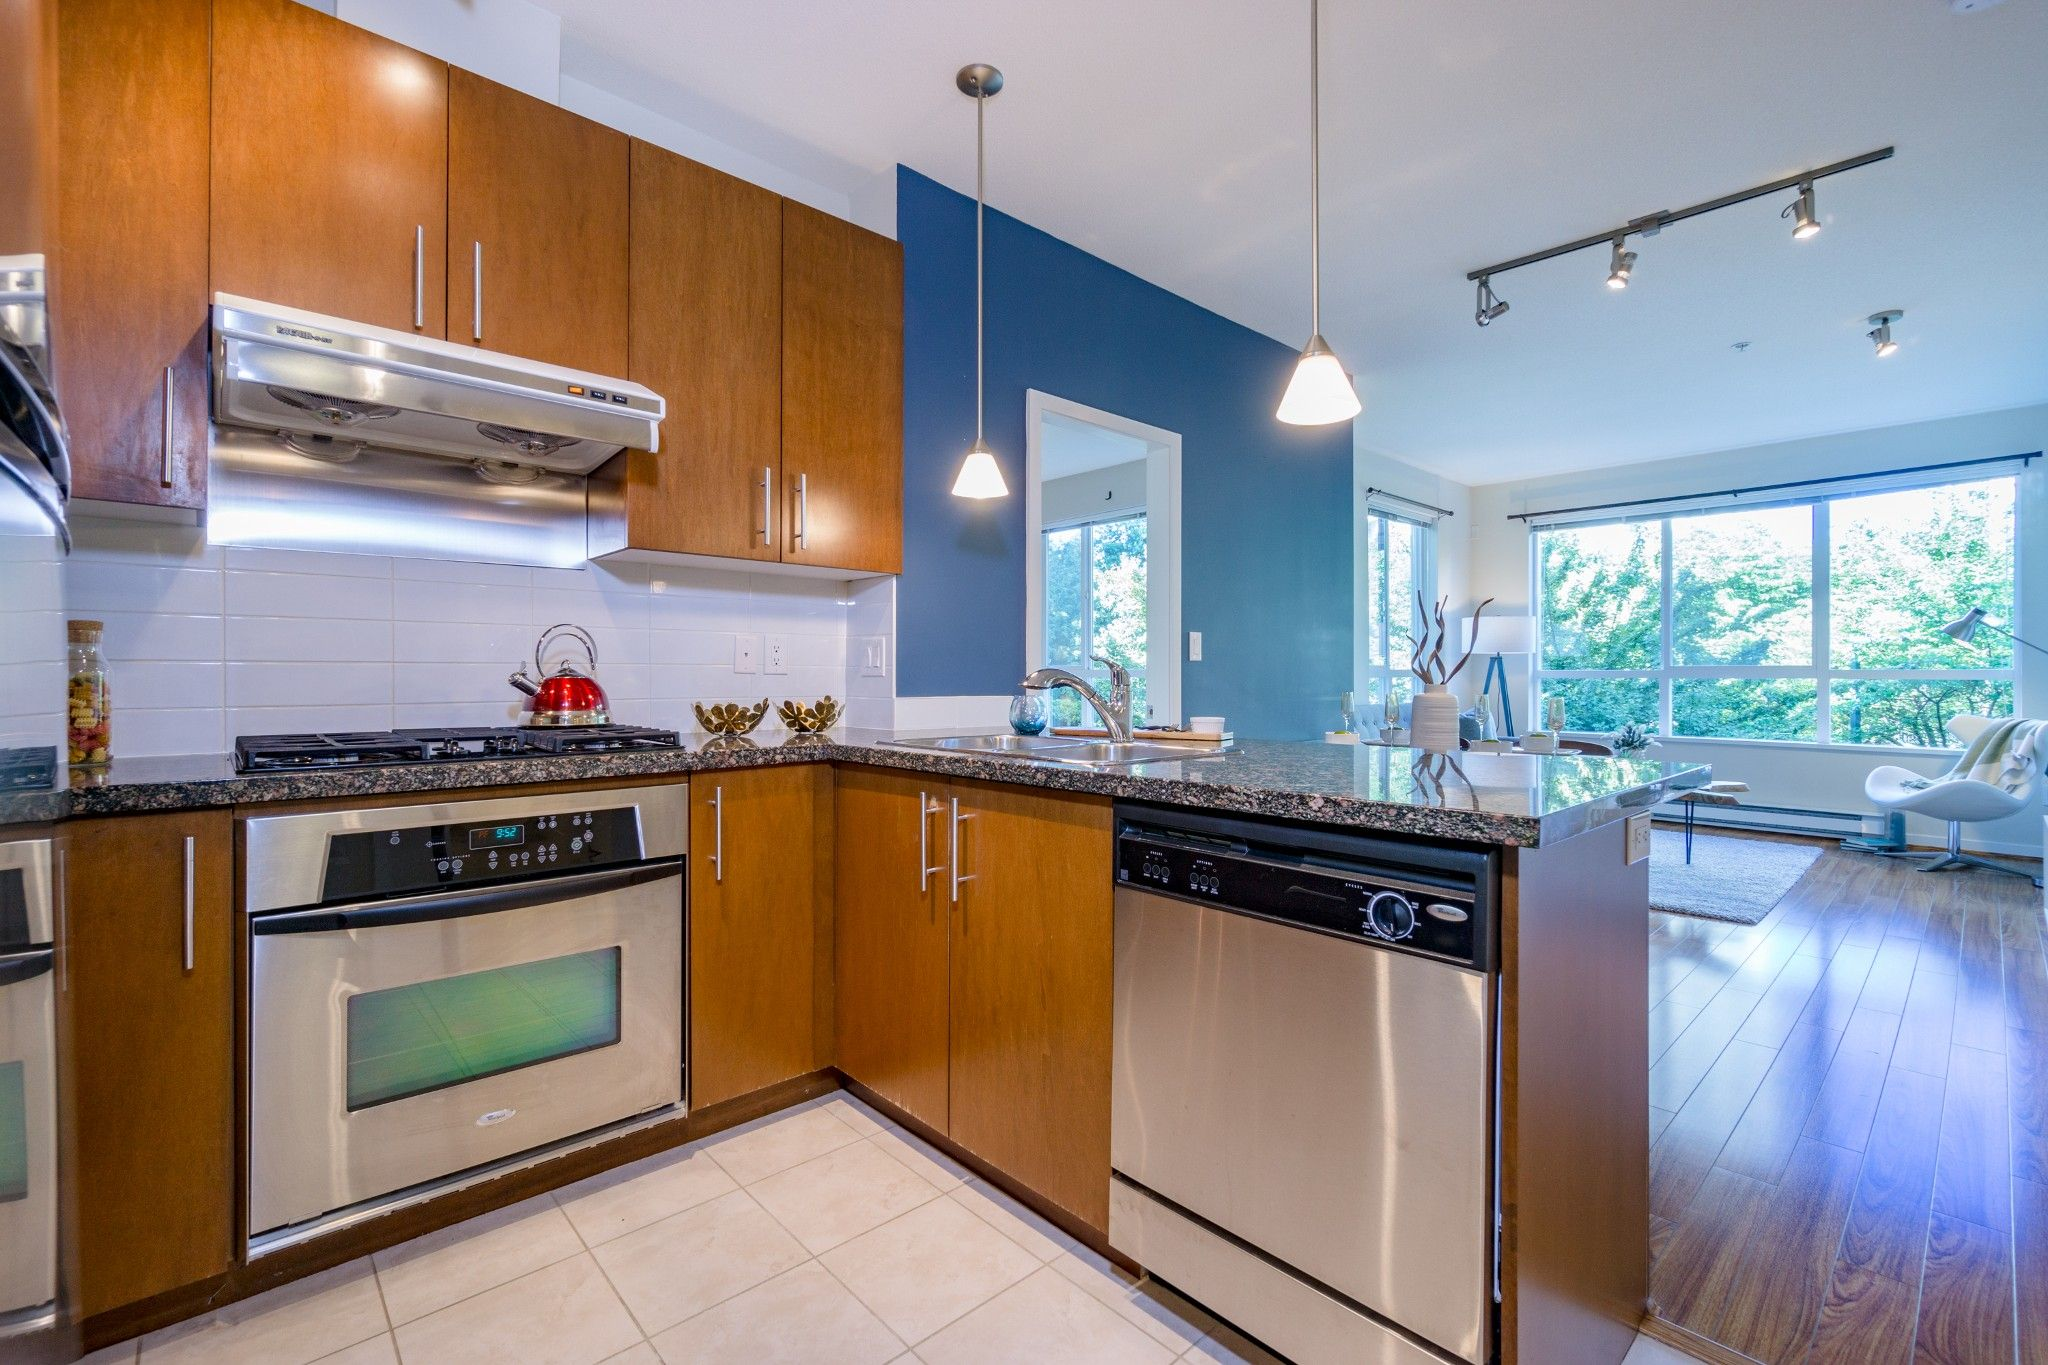 Photo 10: Photos: 208 3551 FOSTER Avenue in Vancouver: Collingwood VE Condo for sale (Vancouver East)  : MLS®# R2291555